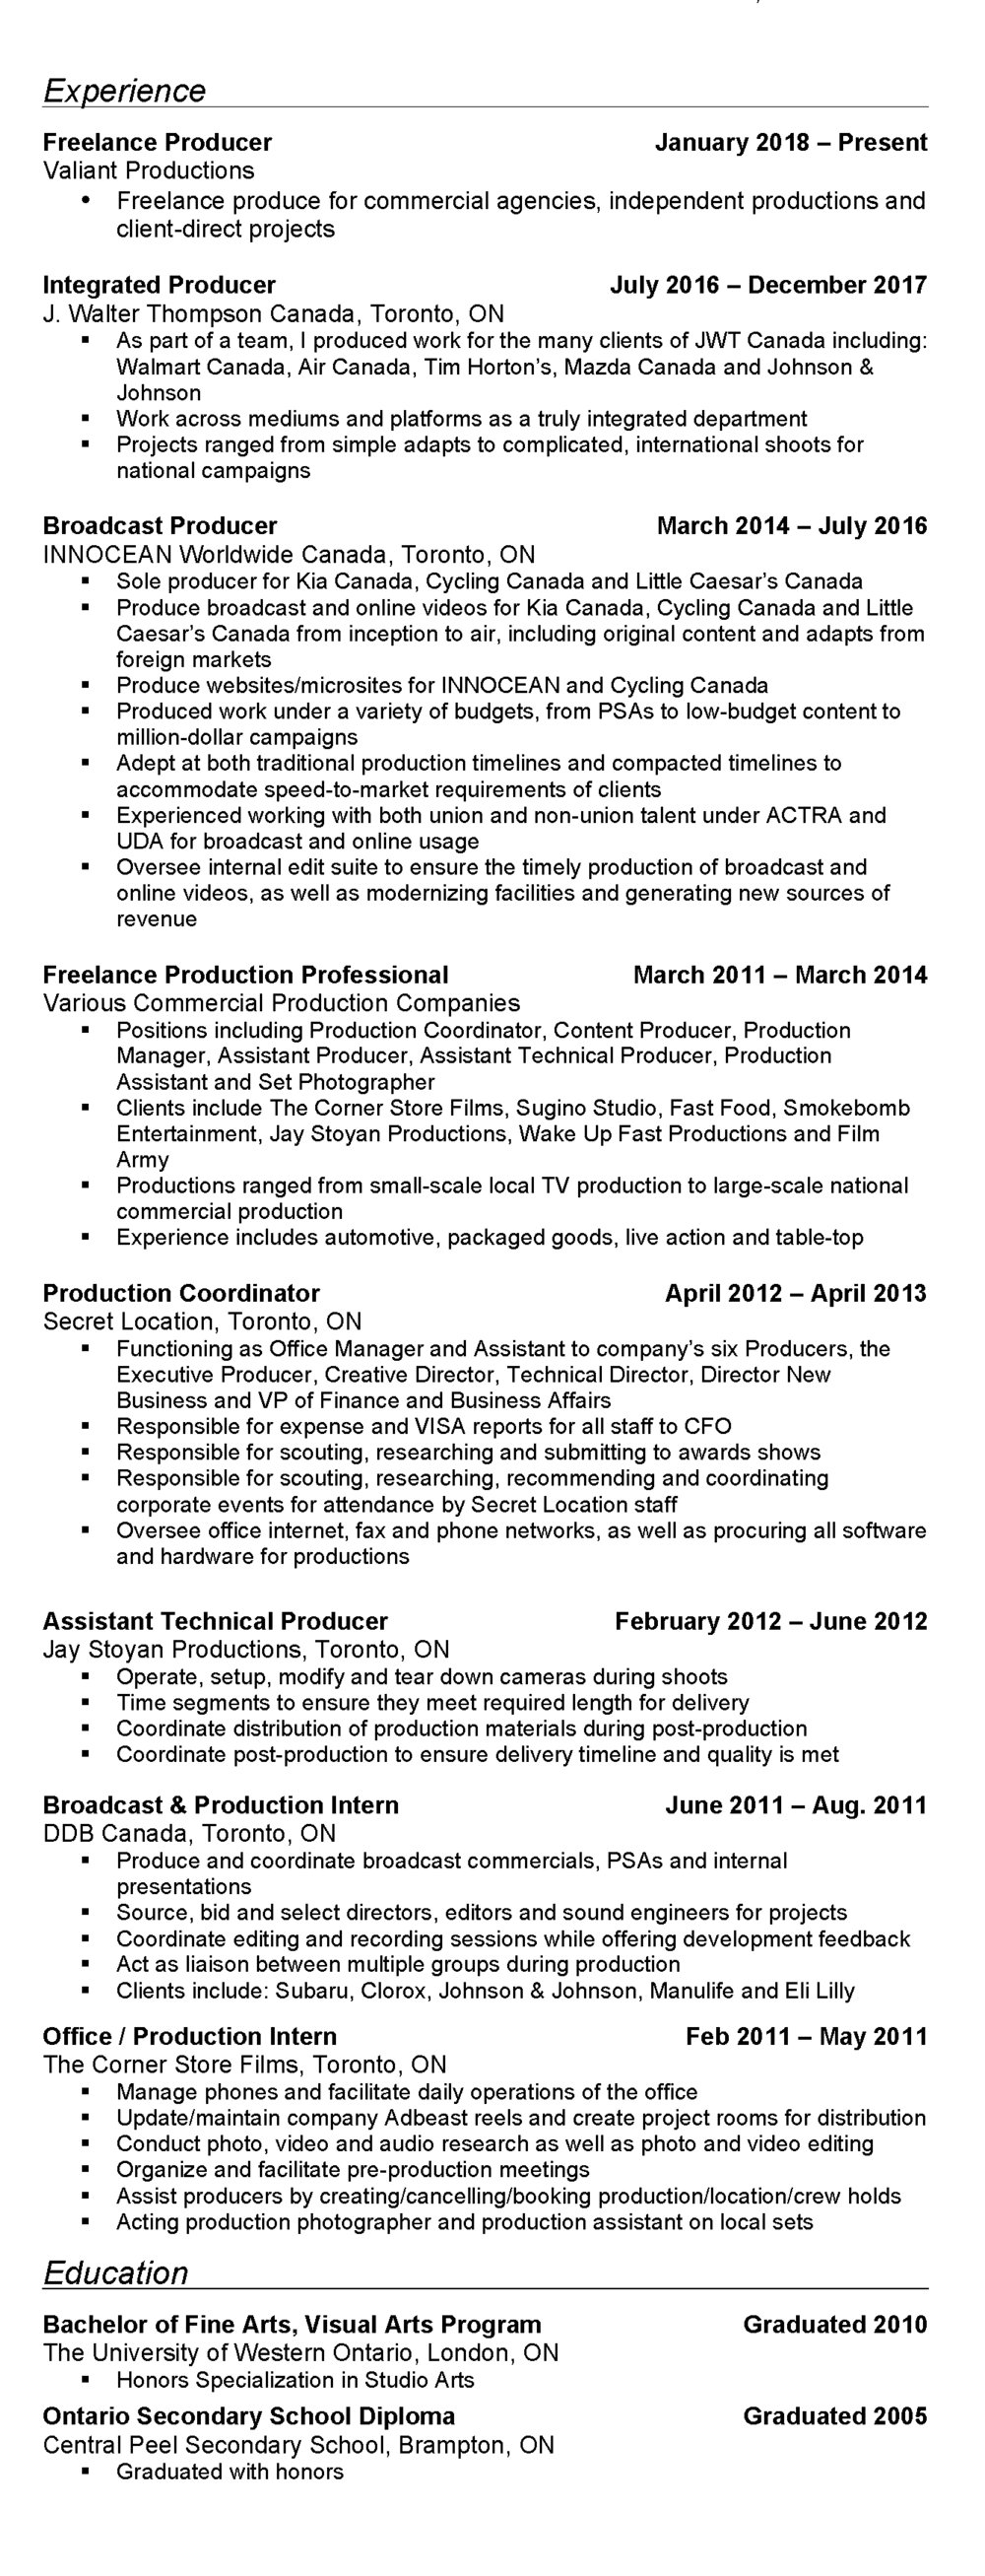 Resume of Adam Park